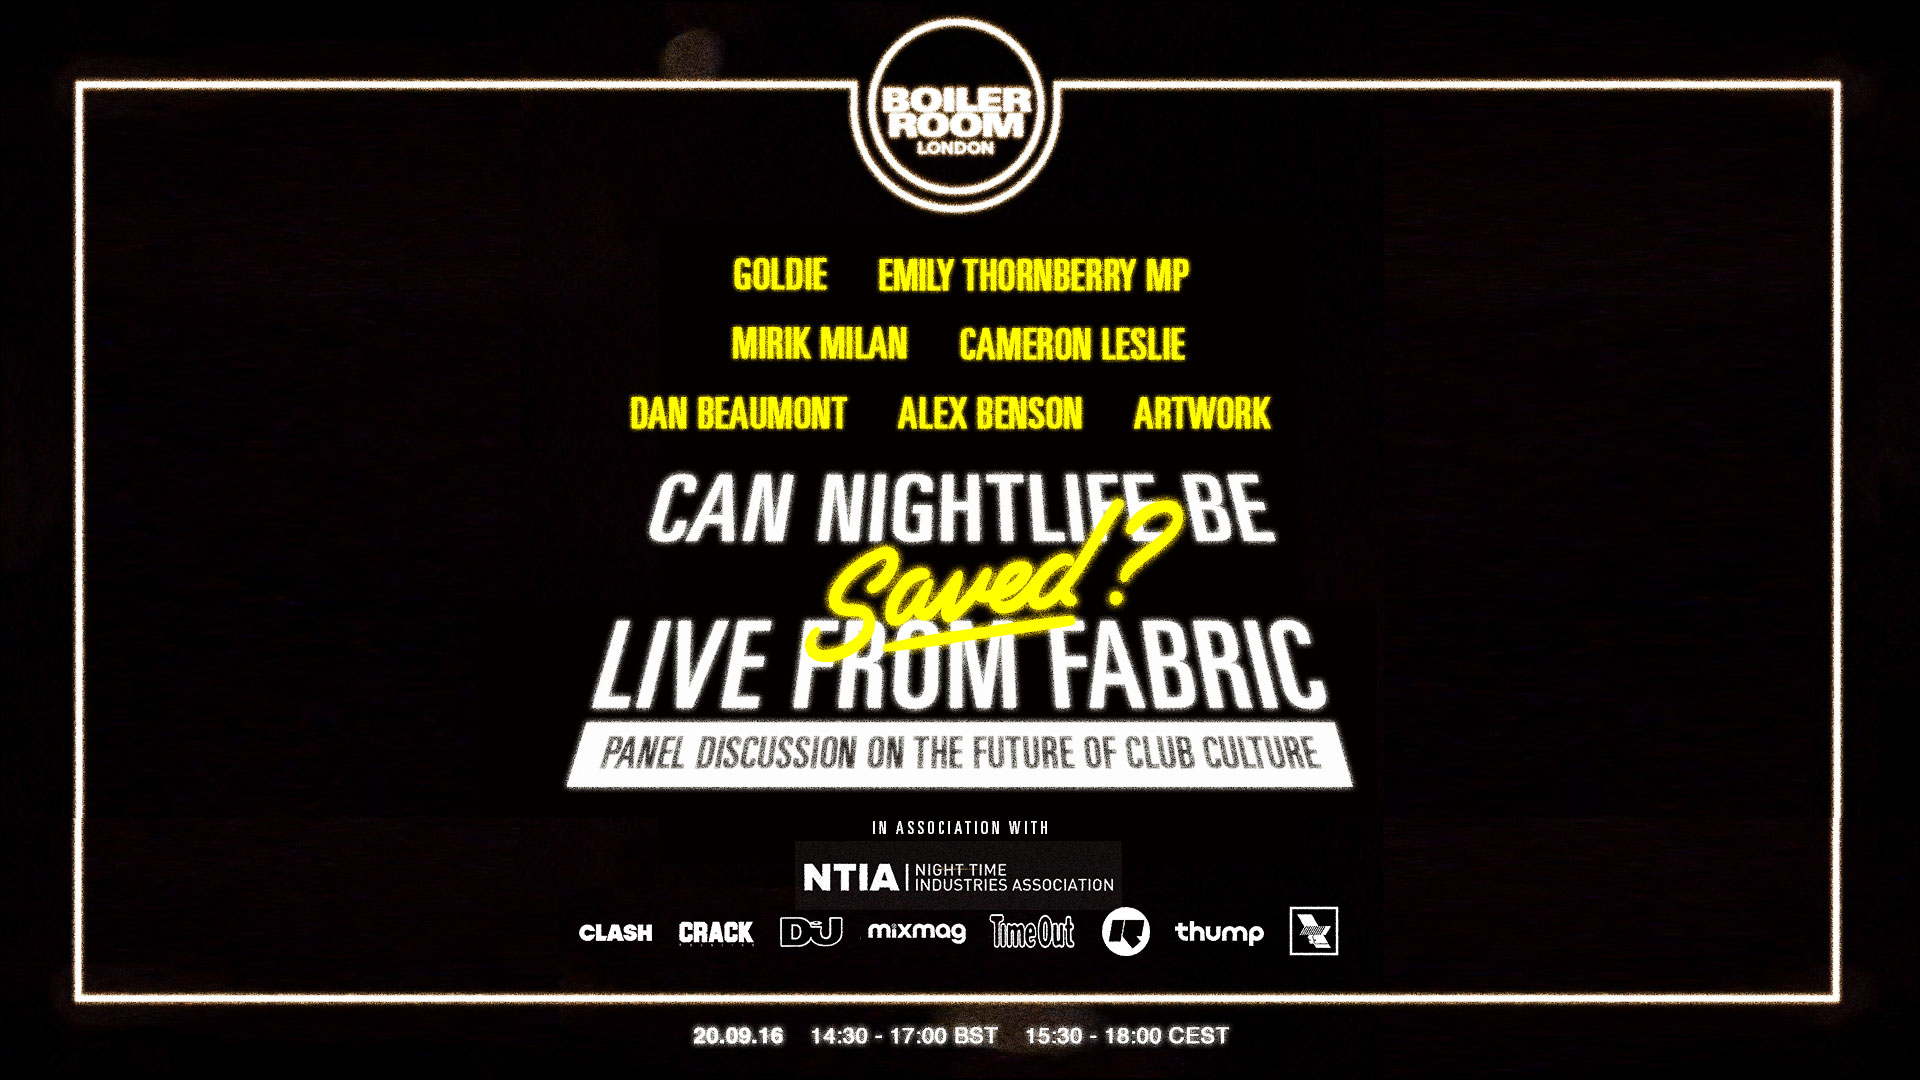 UK: Can Nightlife be Saved? Live from Fabric Flyer Image